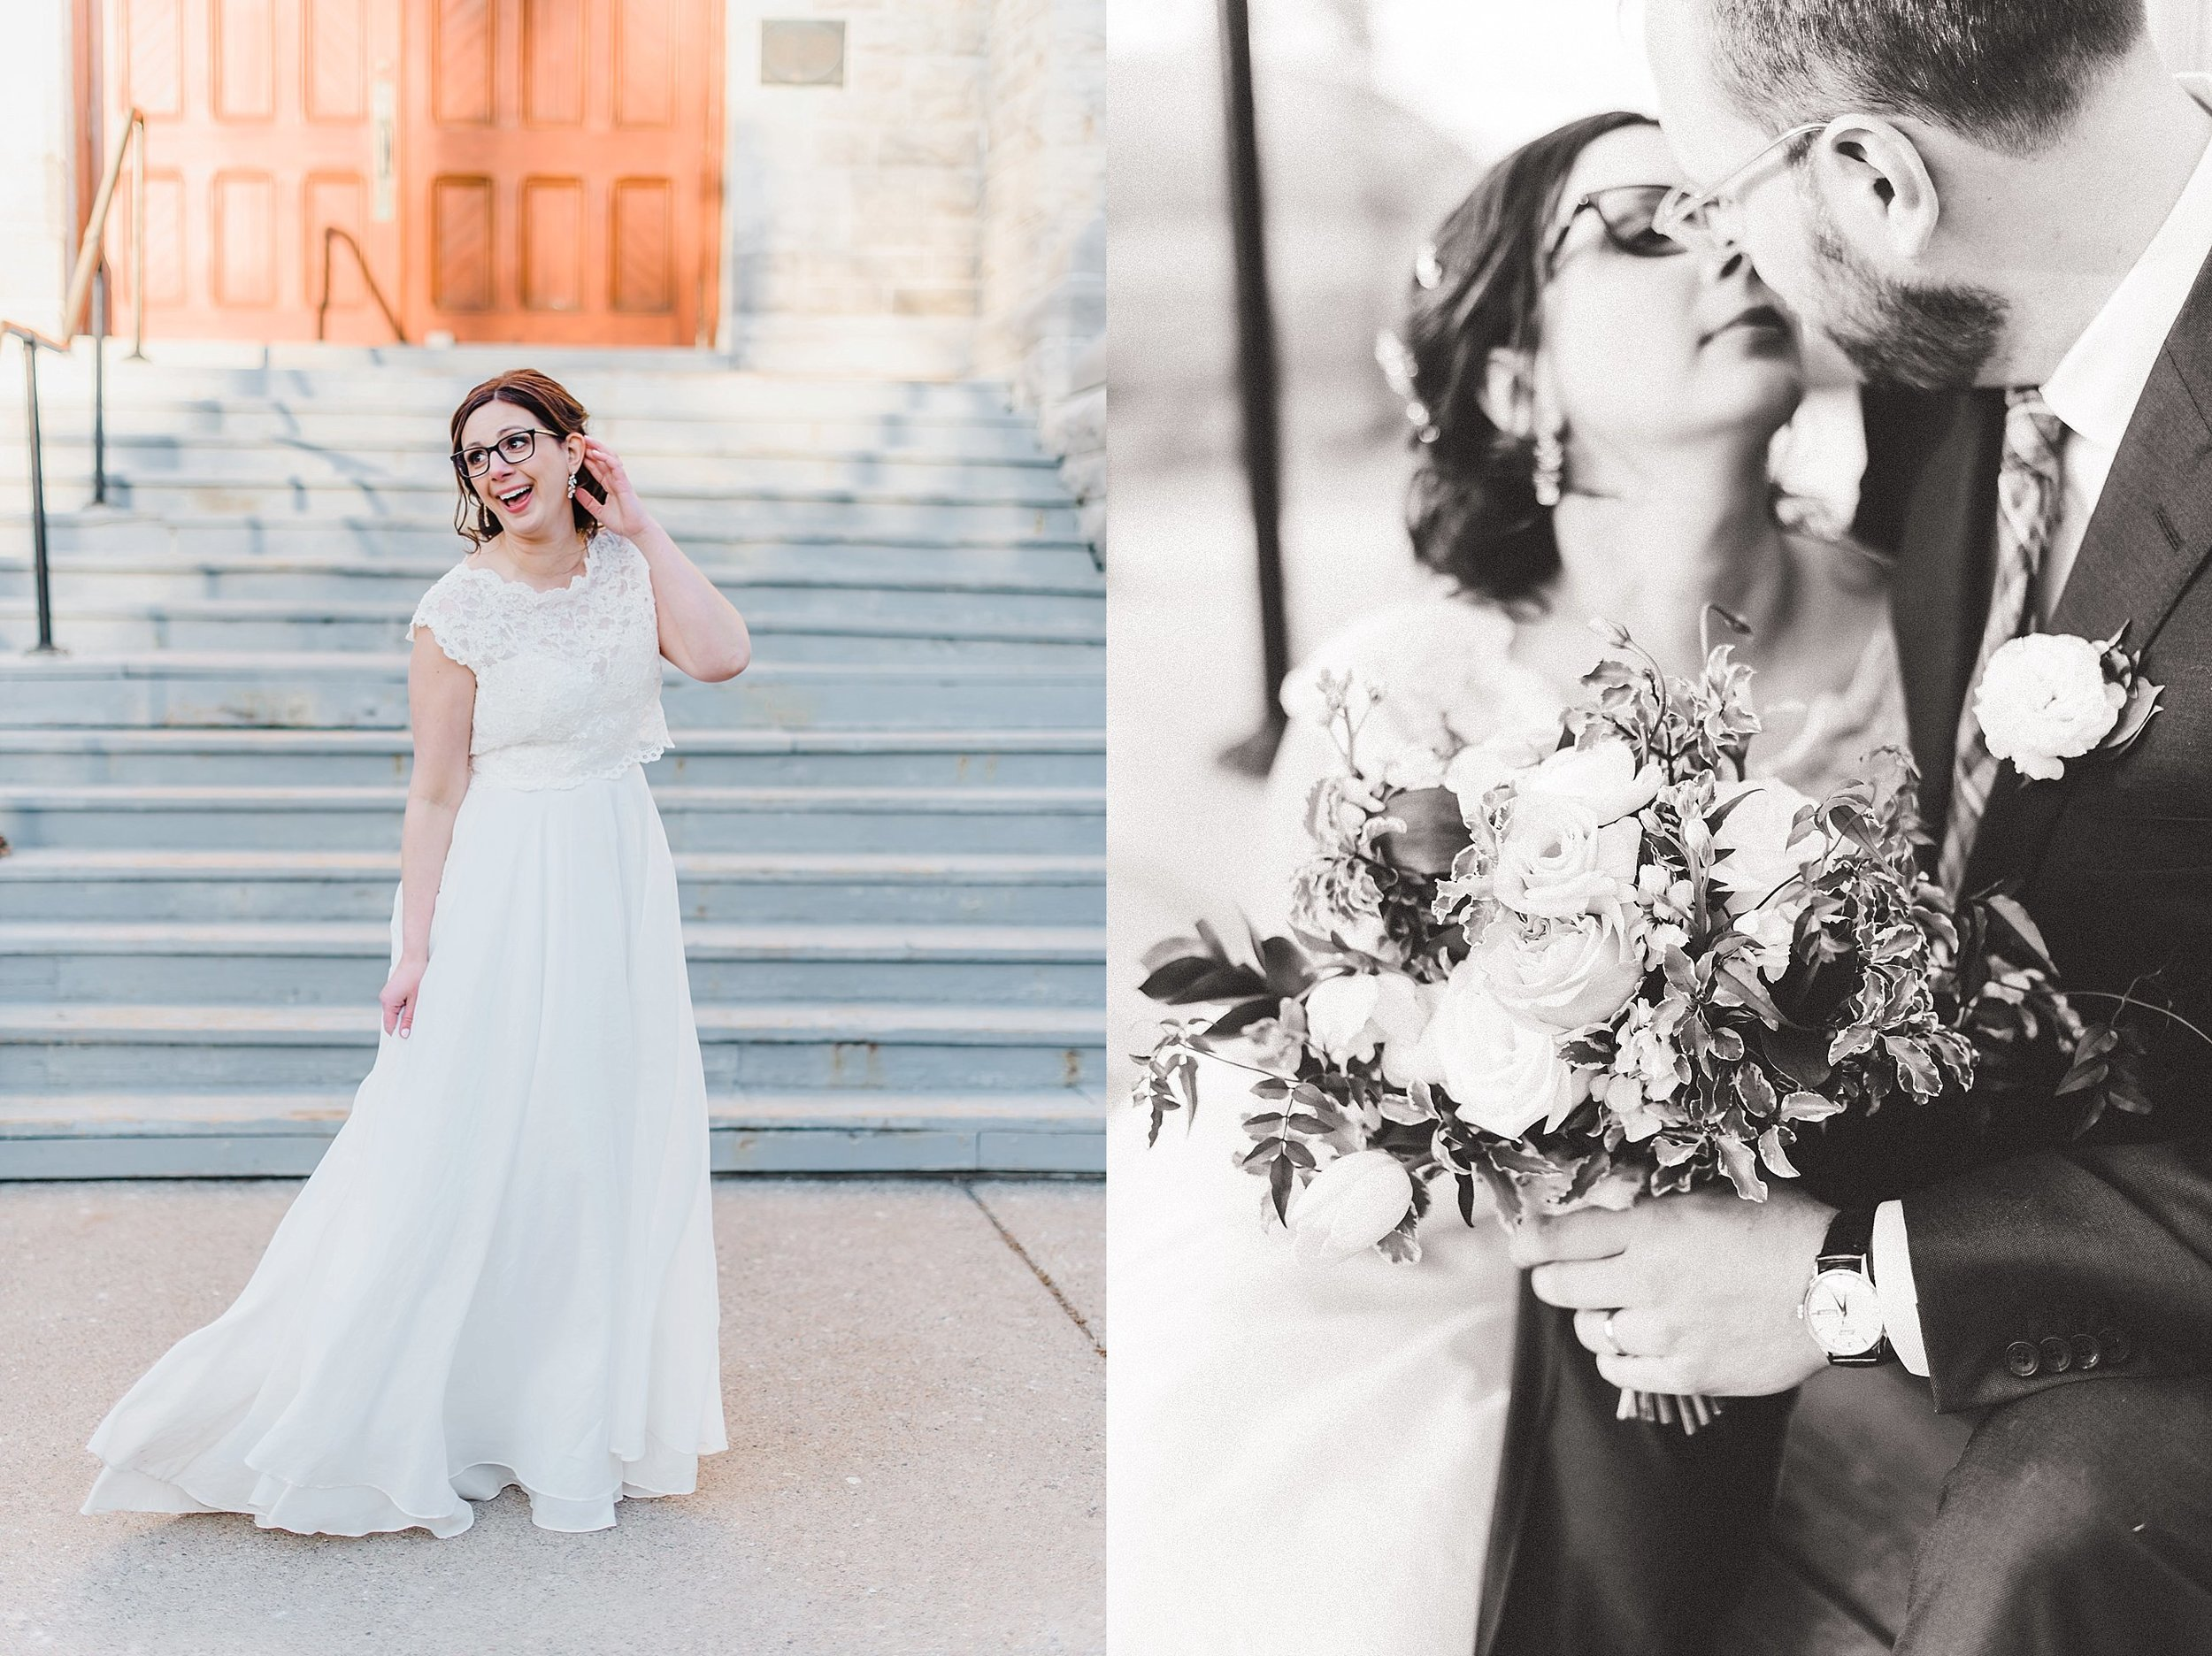 light airy indie fine art ottawa wedding photographer | Ali and Batoul Photography_0070.jpg